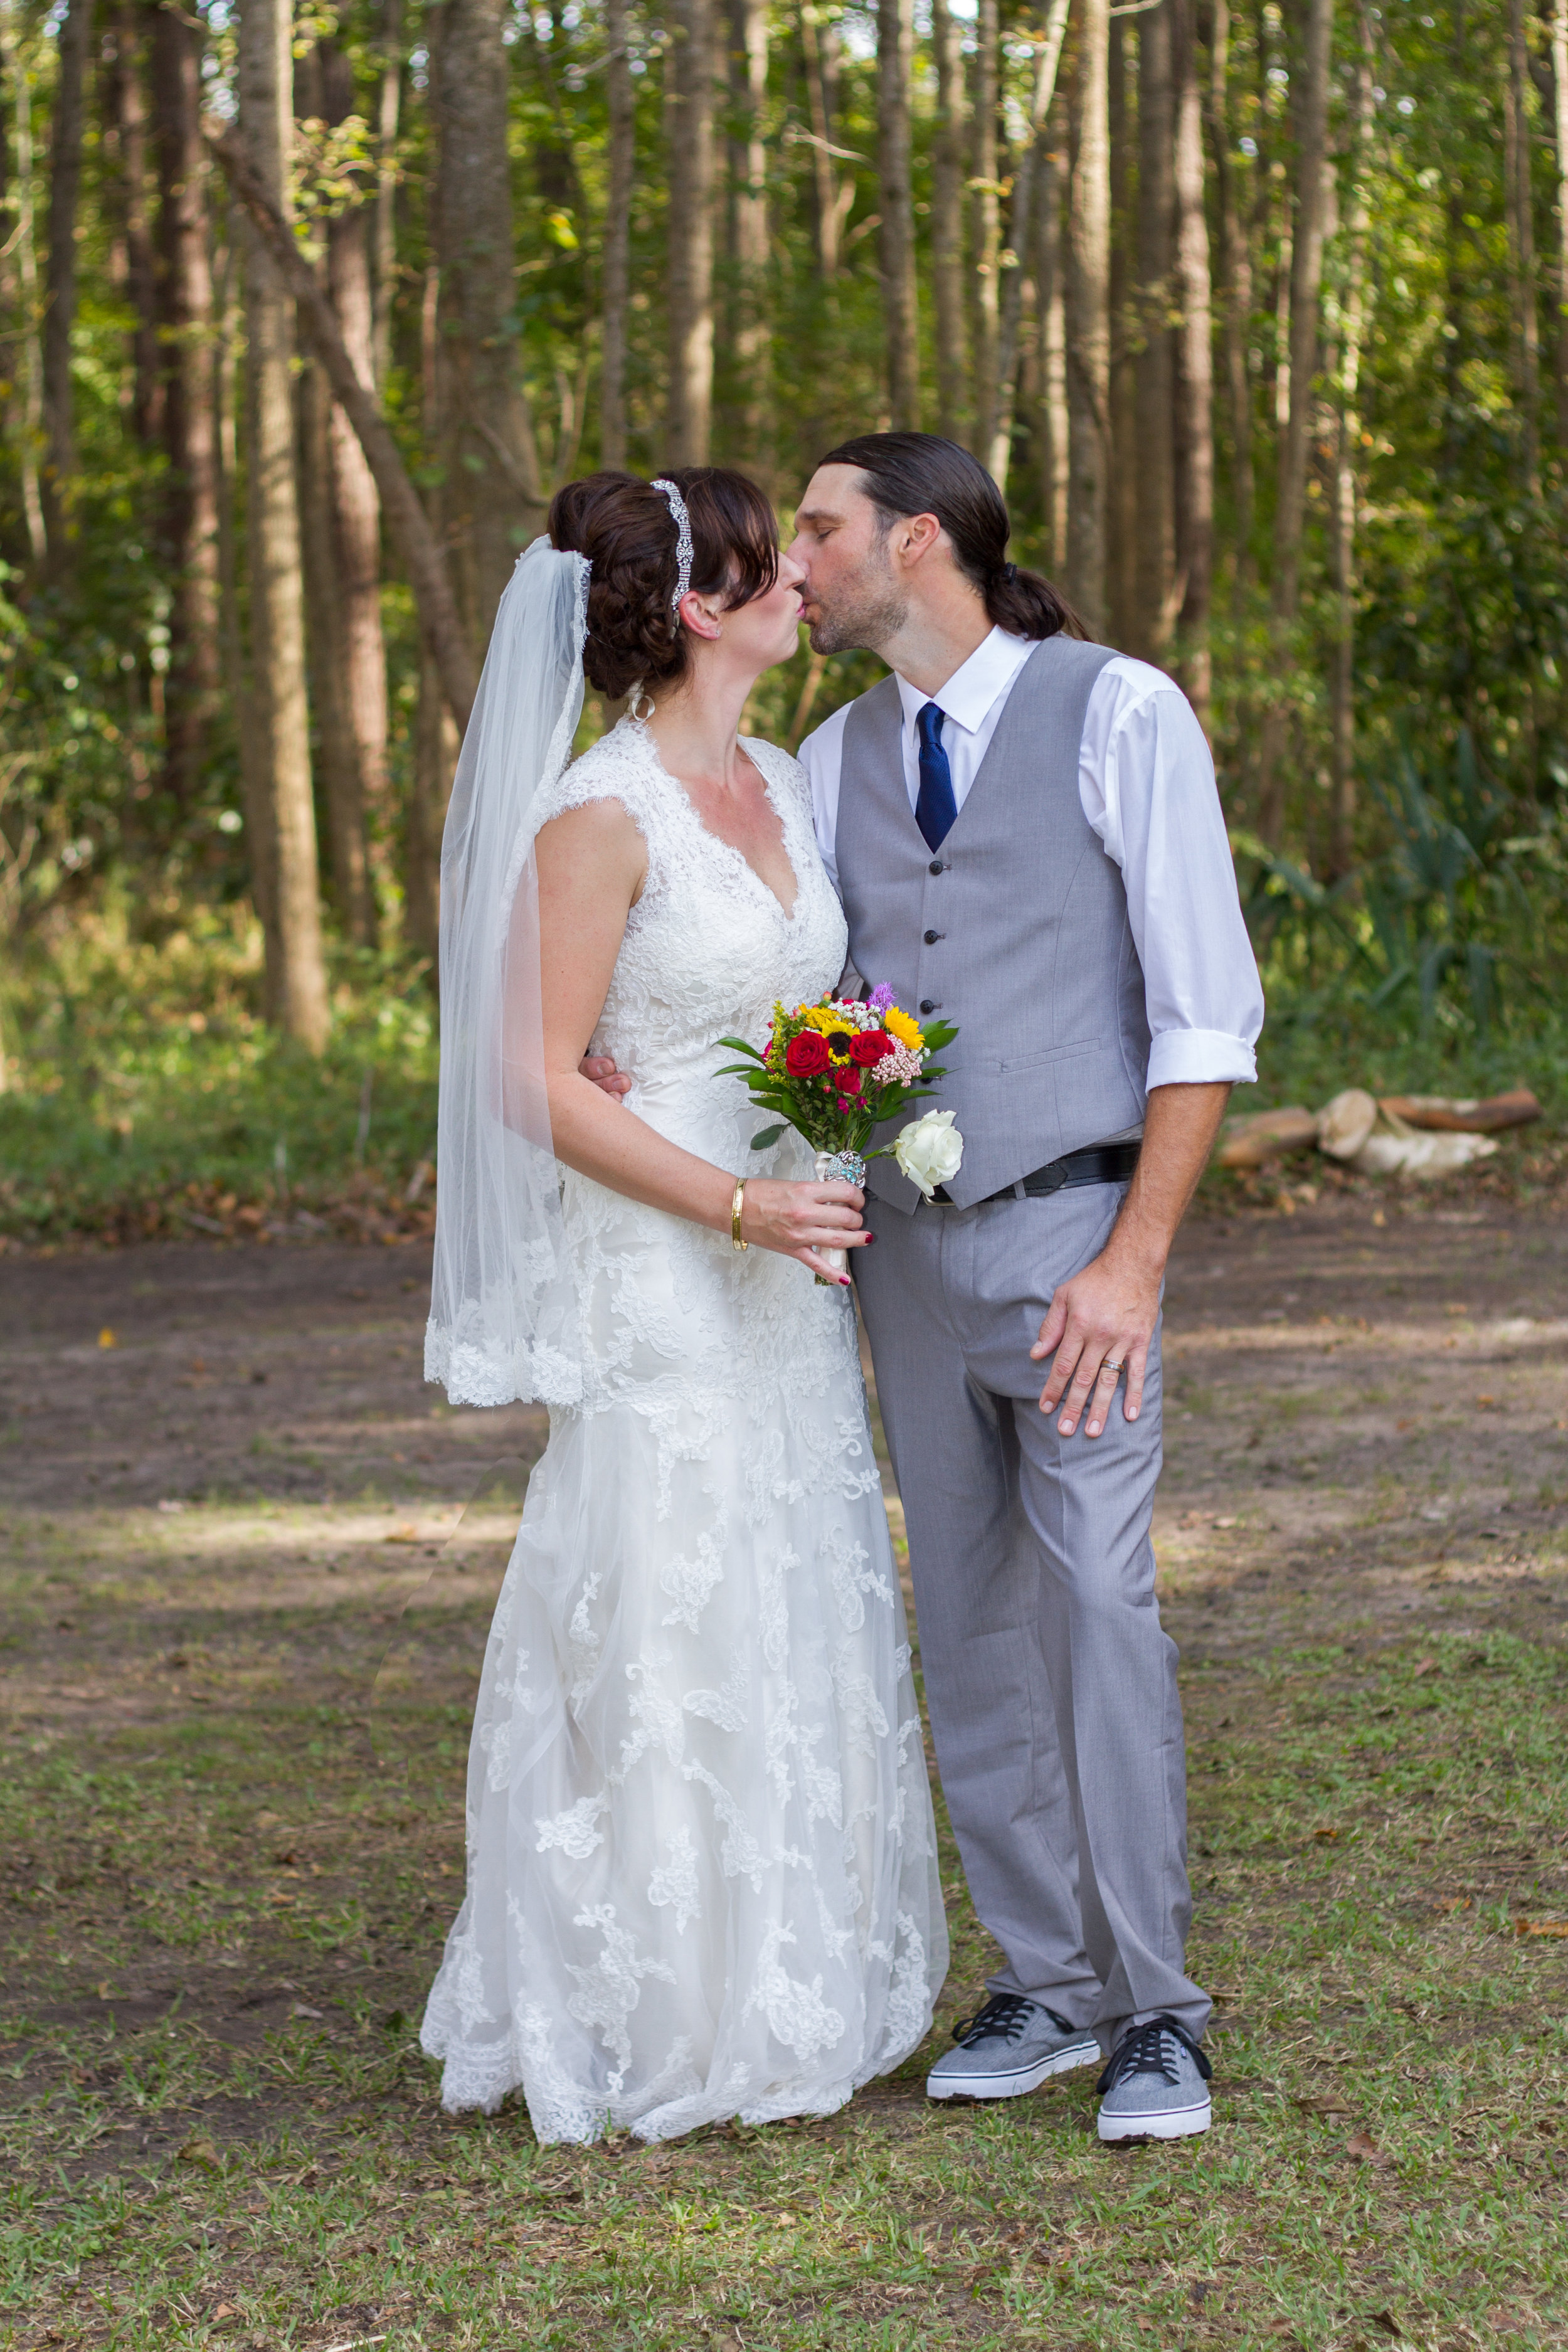 Jacqueline and Shawn Wedding (269 of 597).jpg